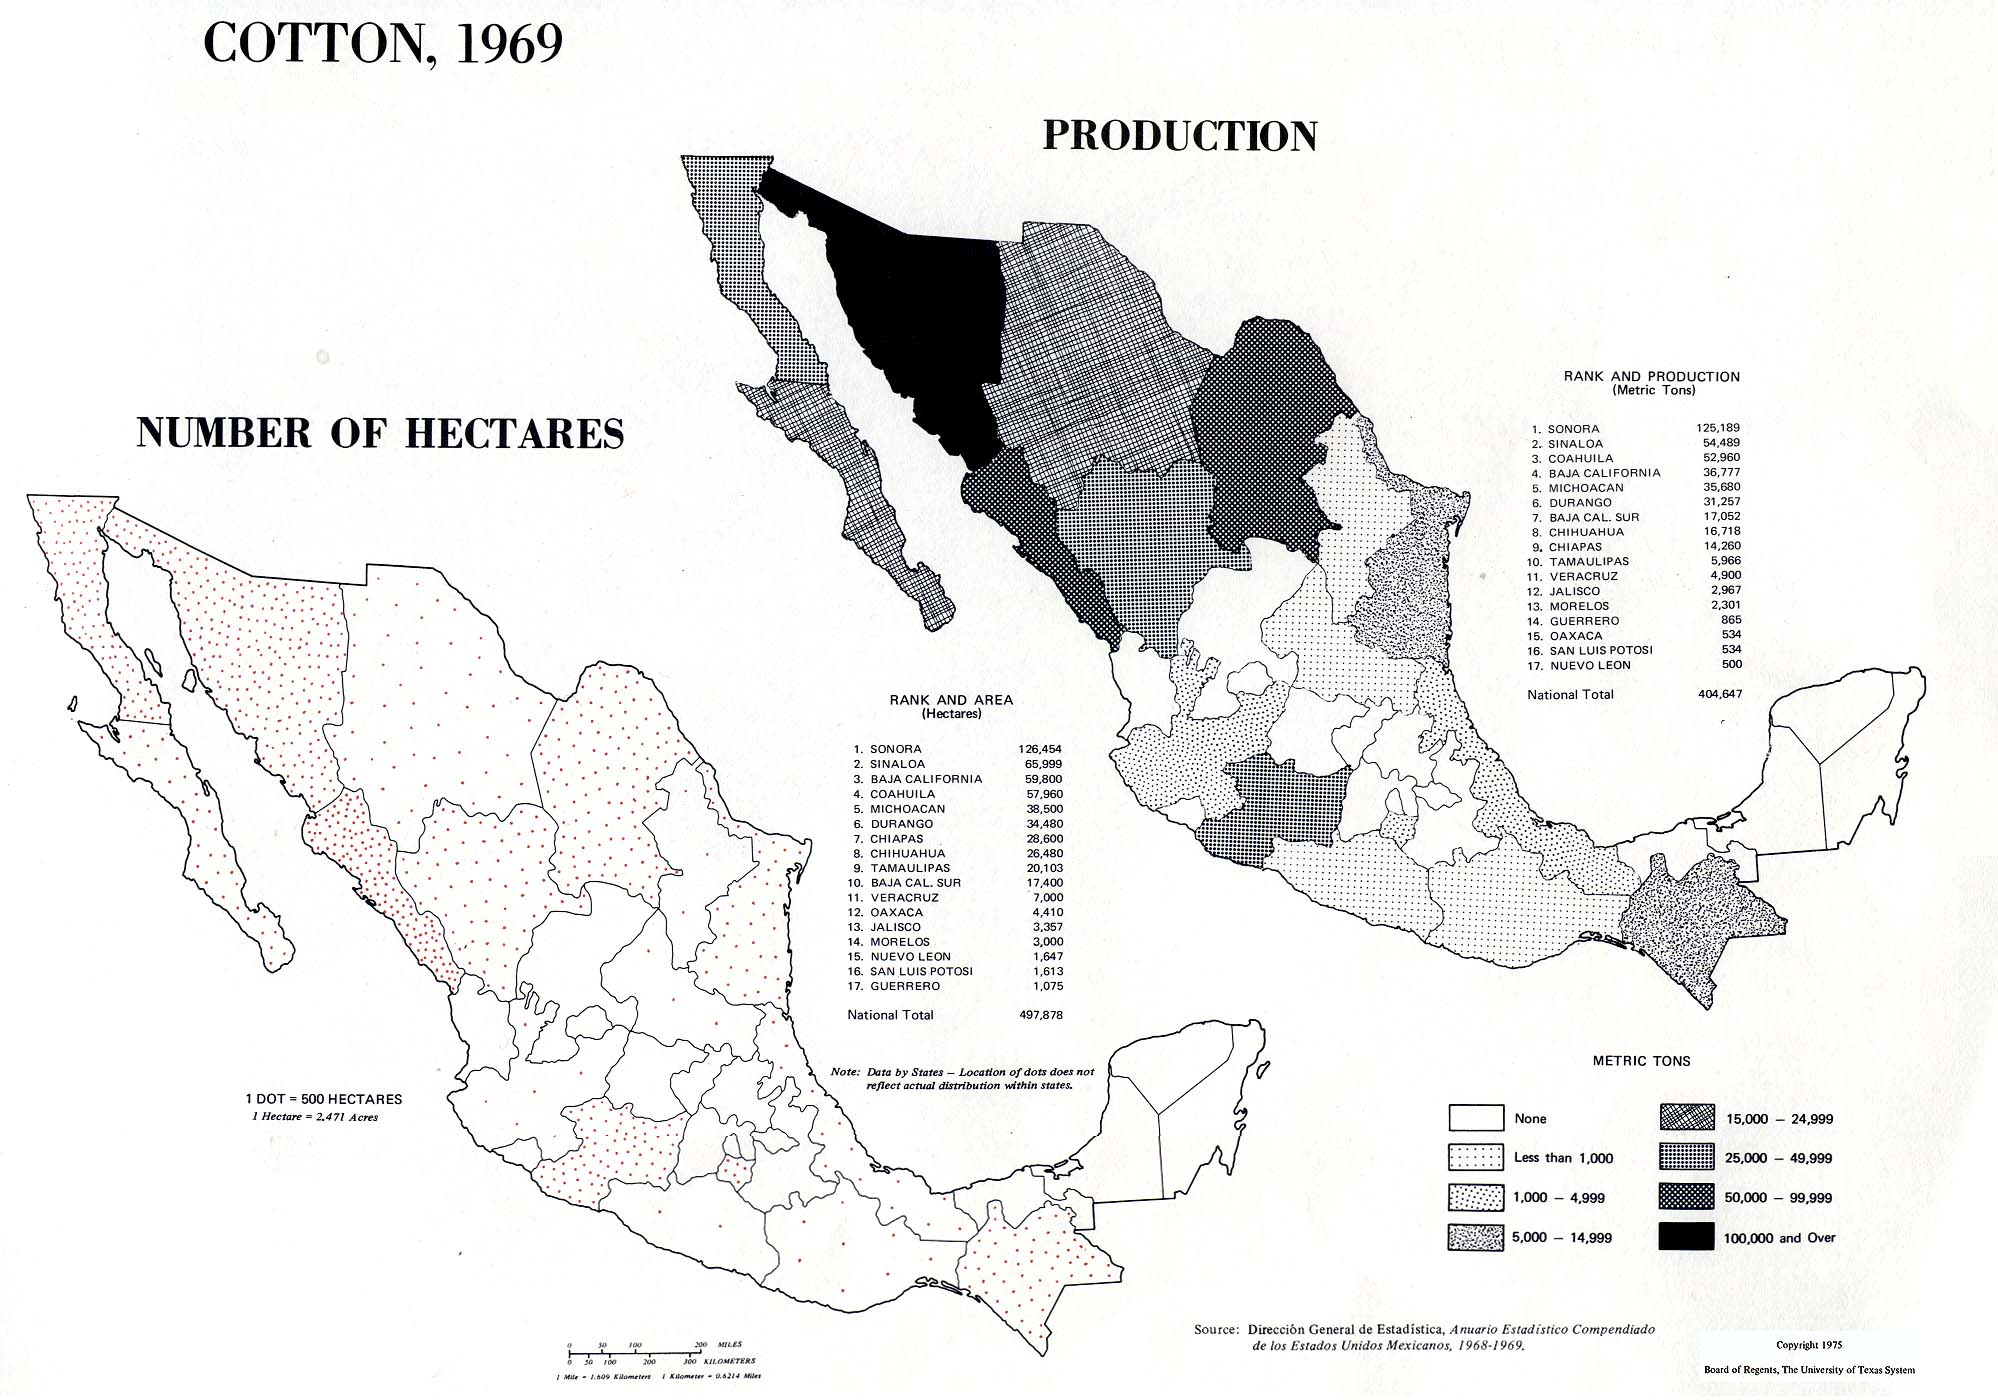 Cotton Production in Mexico 1969